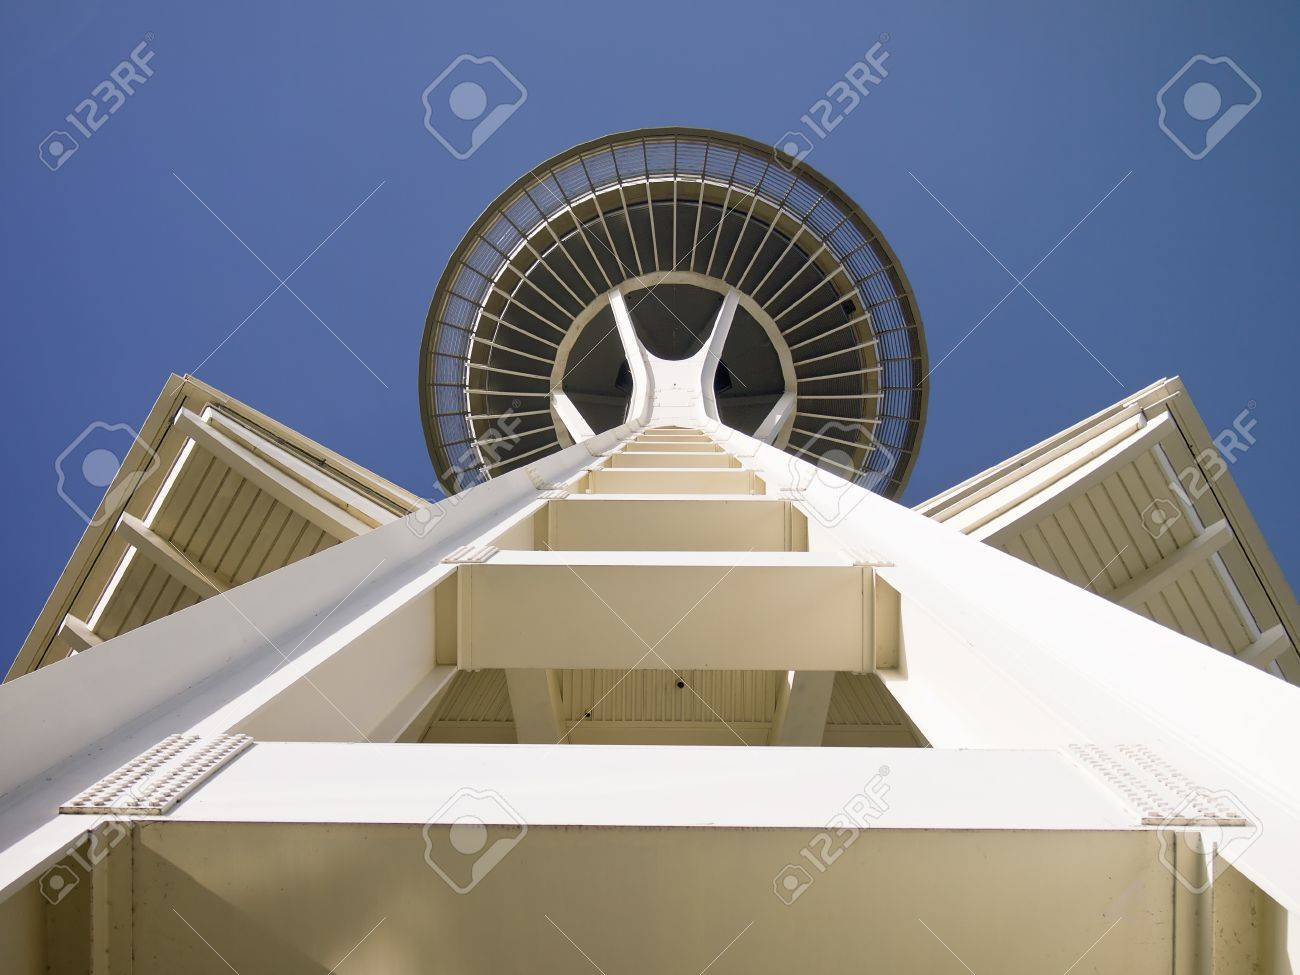 A view of the Seattle Space Needle as seen from 400 feet directly below the main structure. The lower observation deck extends on both sides. Stock Photo - 13574637